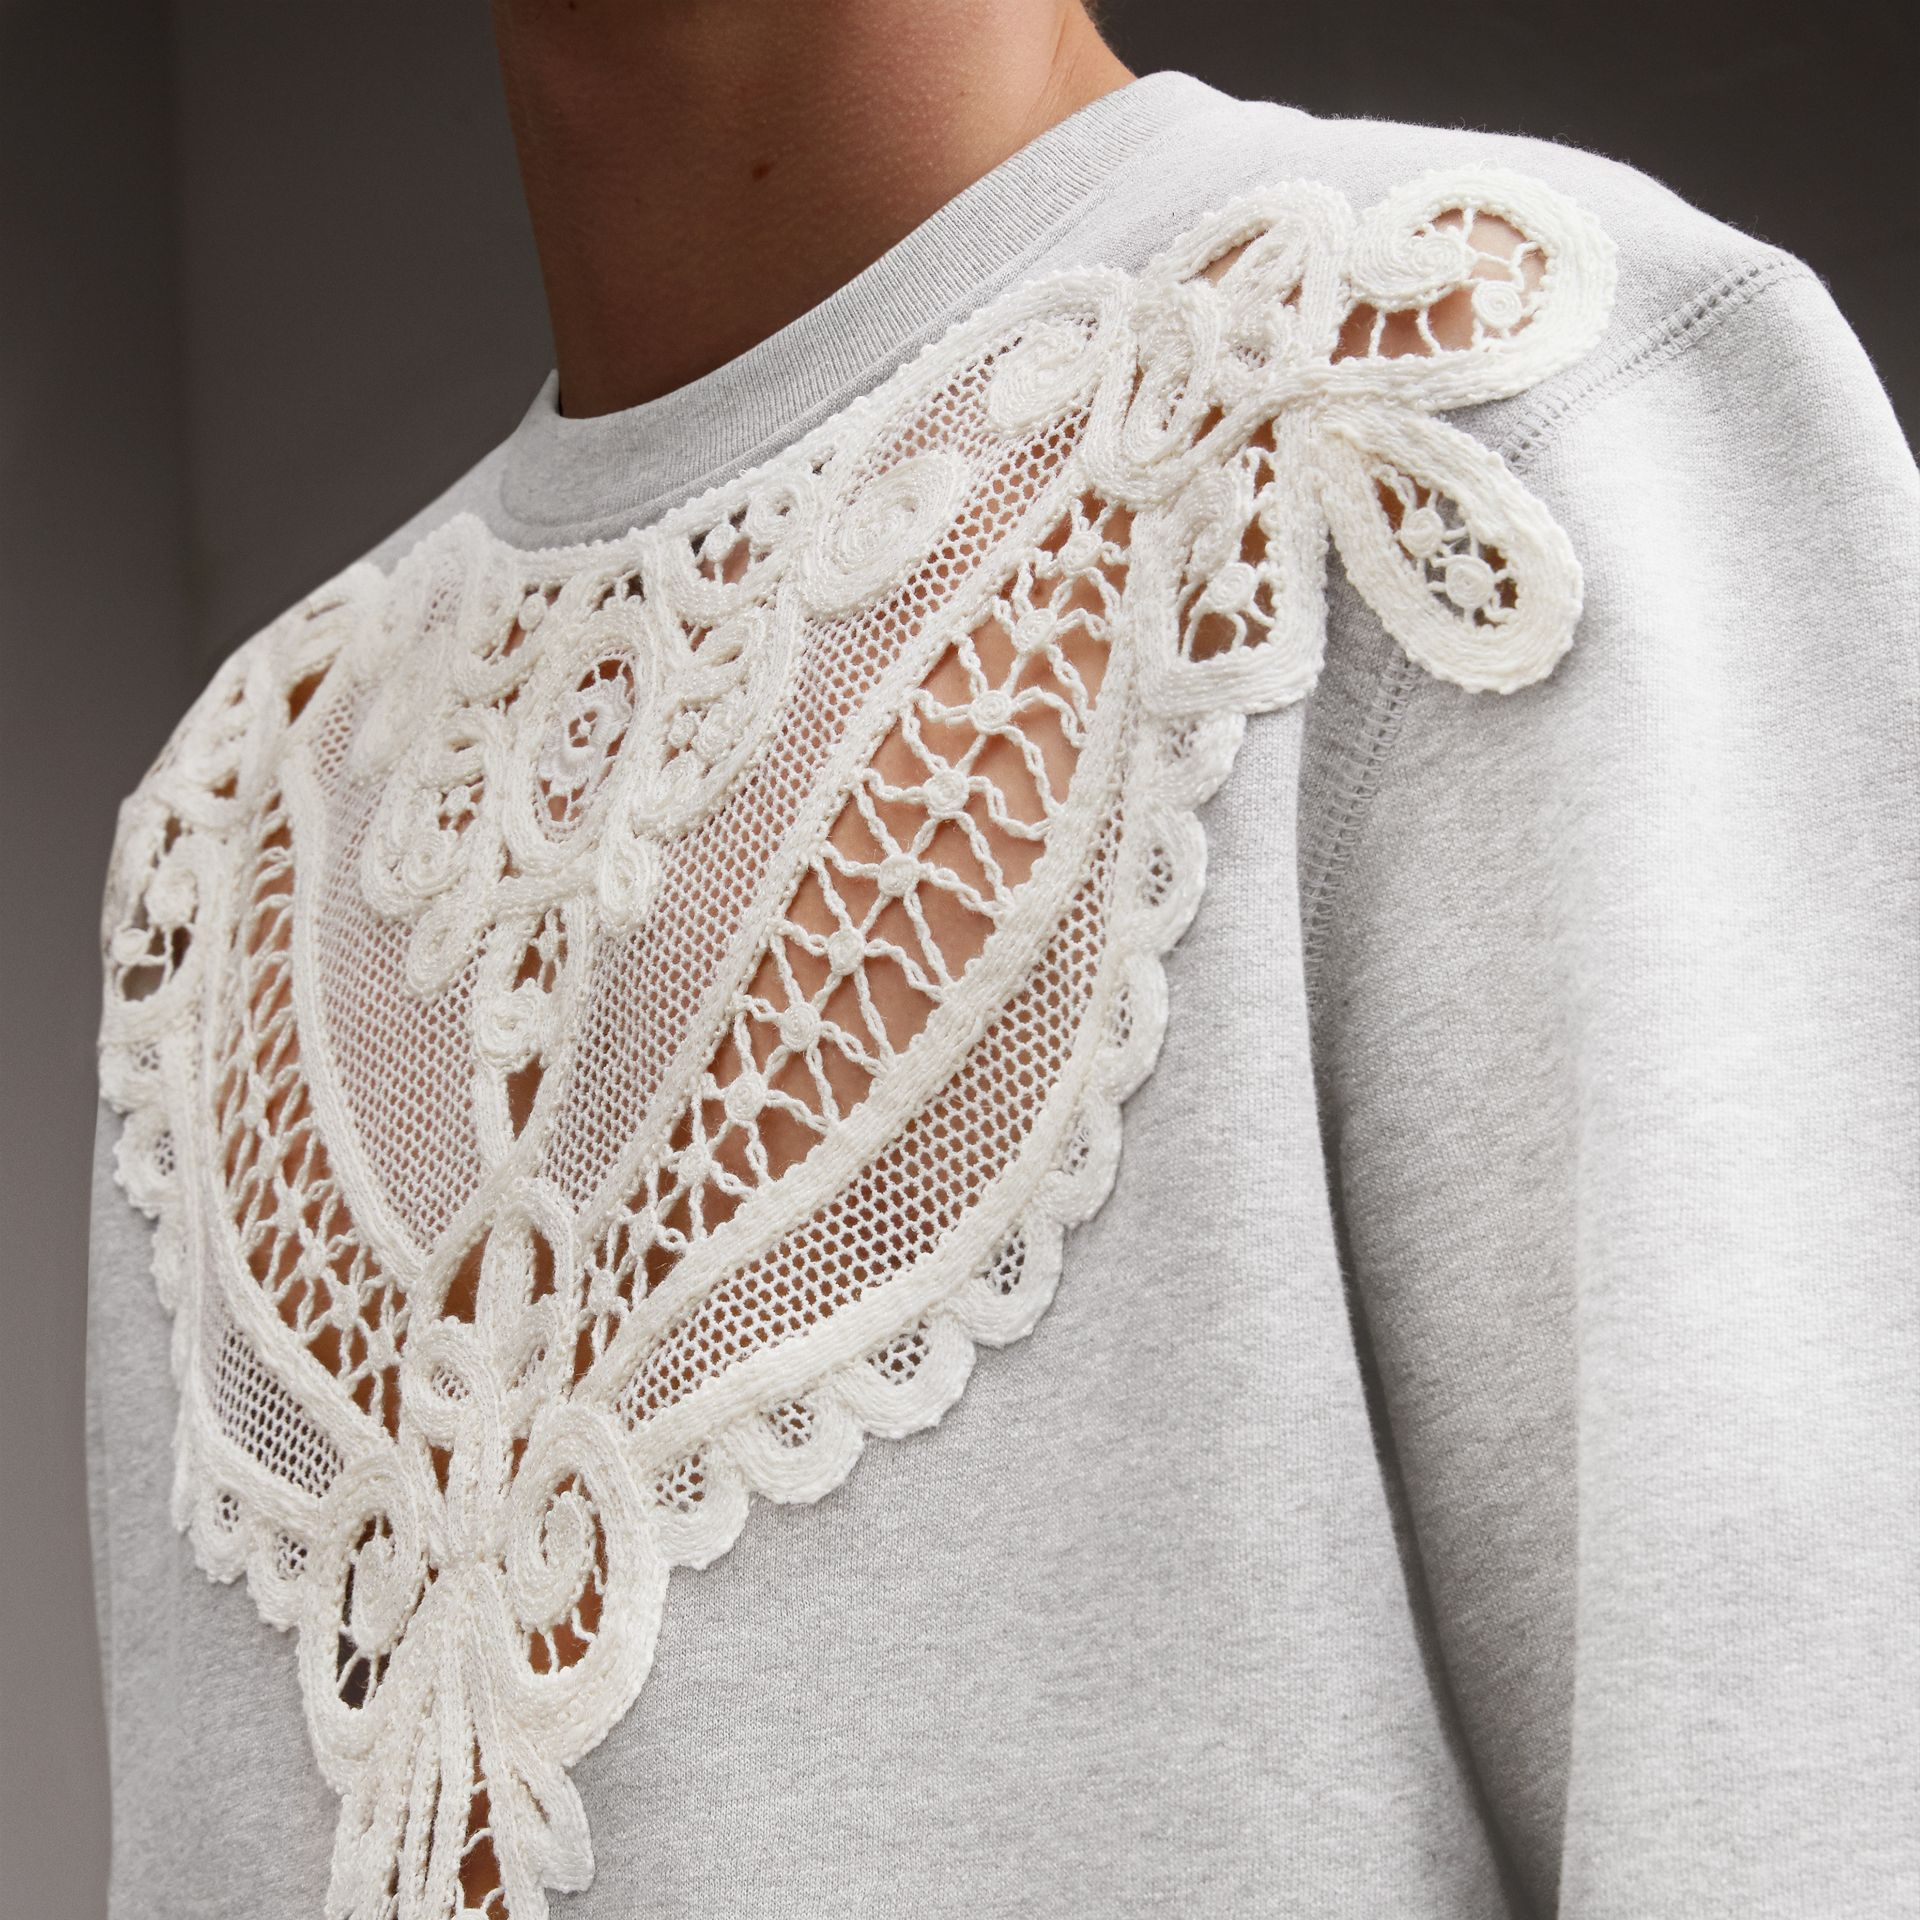 Unisex Lace Cutwork Sweatshirt in Light Grey Melange - Men | Burberry - gallery image 6